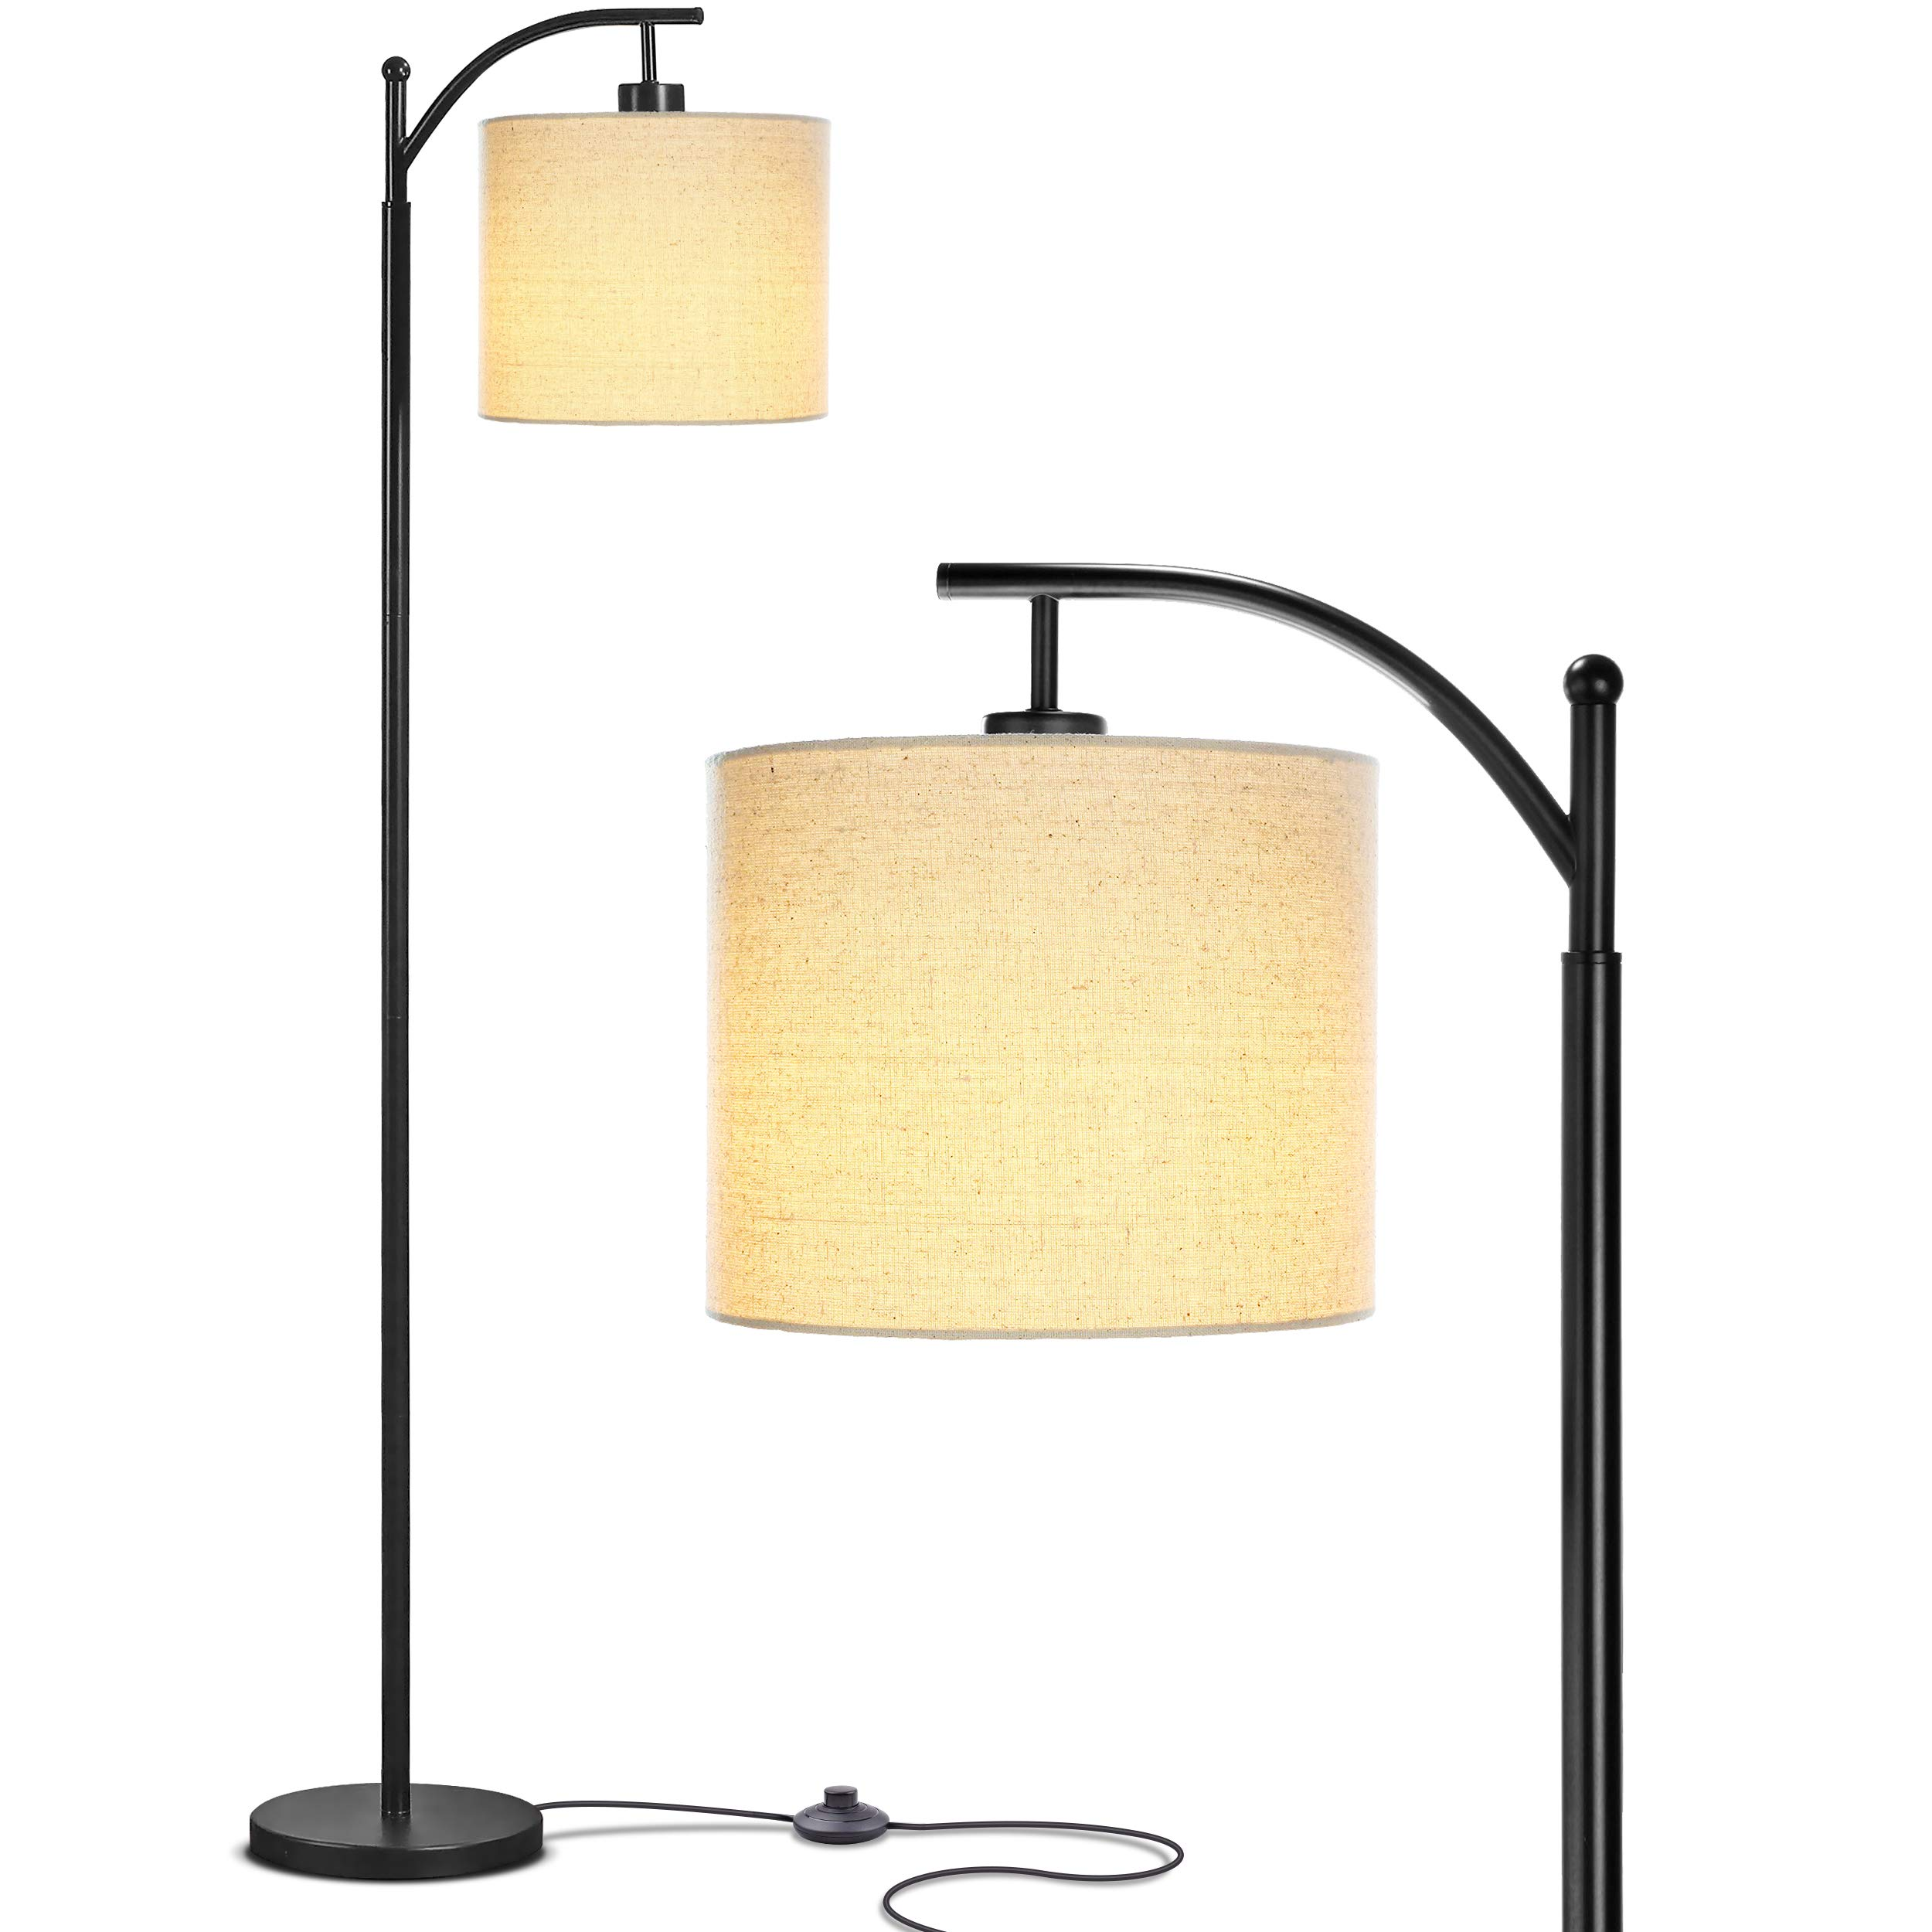 Brightech Montage - Bedroom & Living Room LED Floor Lamp - Standing Industrial Arc Light with Hanging Lamp Shade - Tall Pole Uplight for Office - with LED Bulb- Black by Brightech